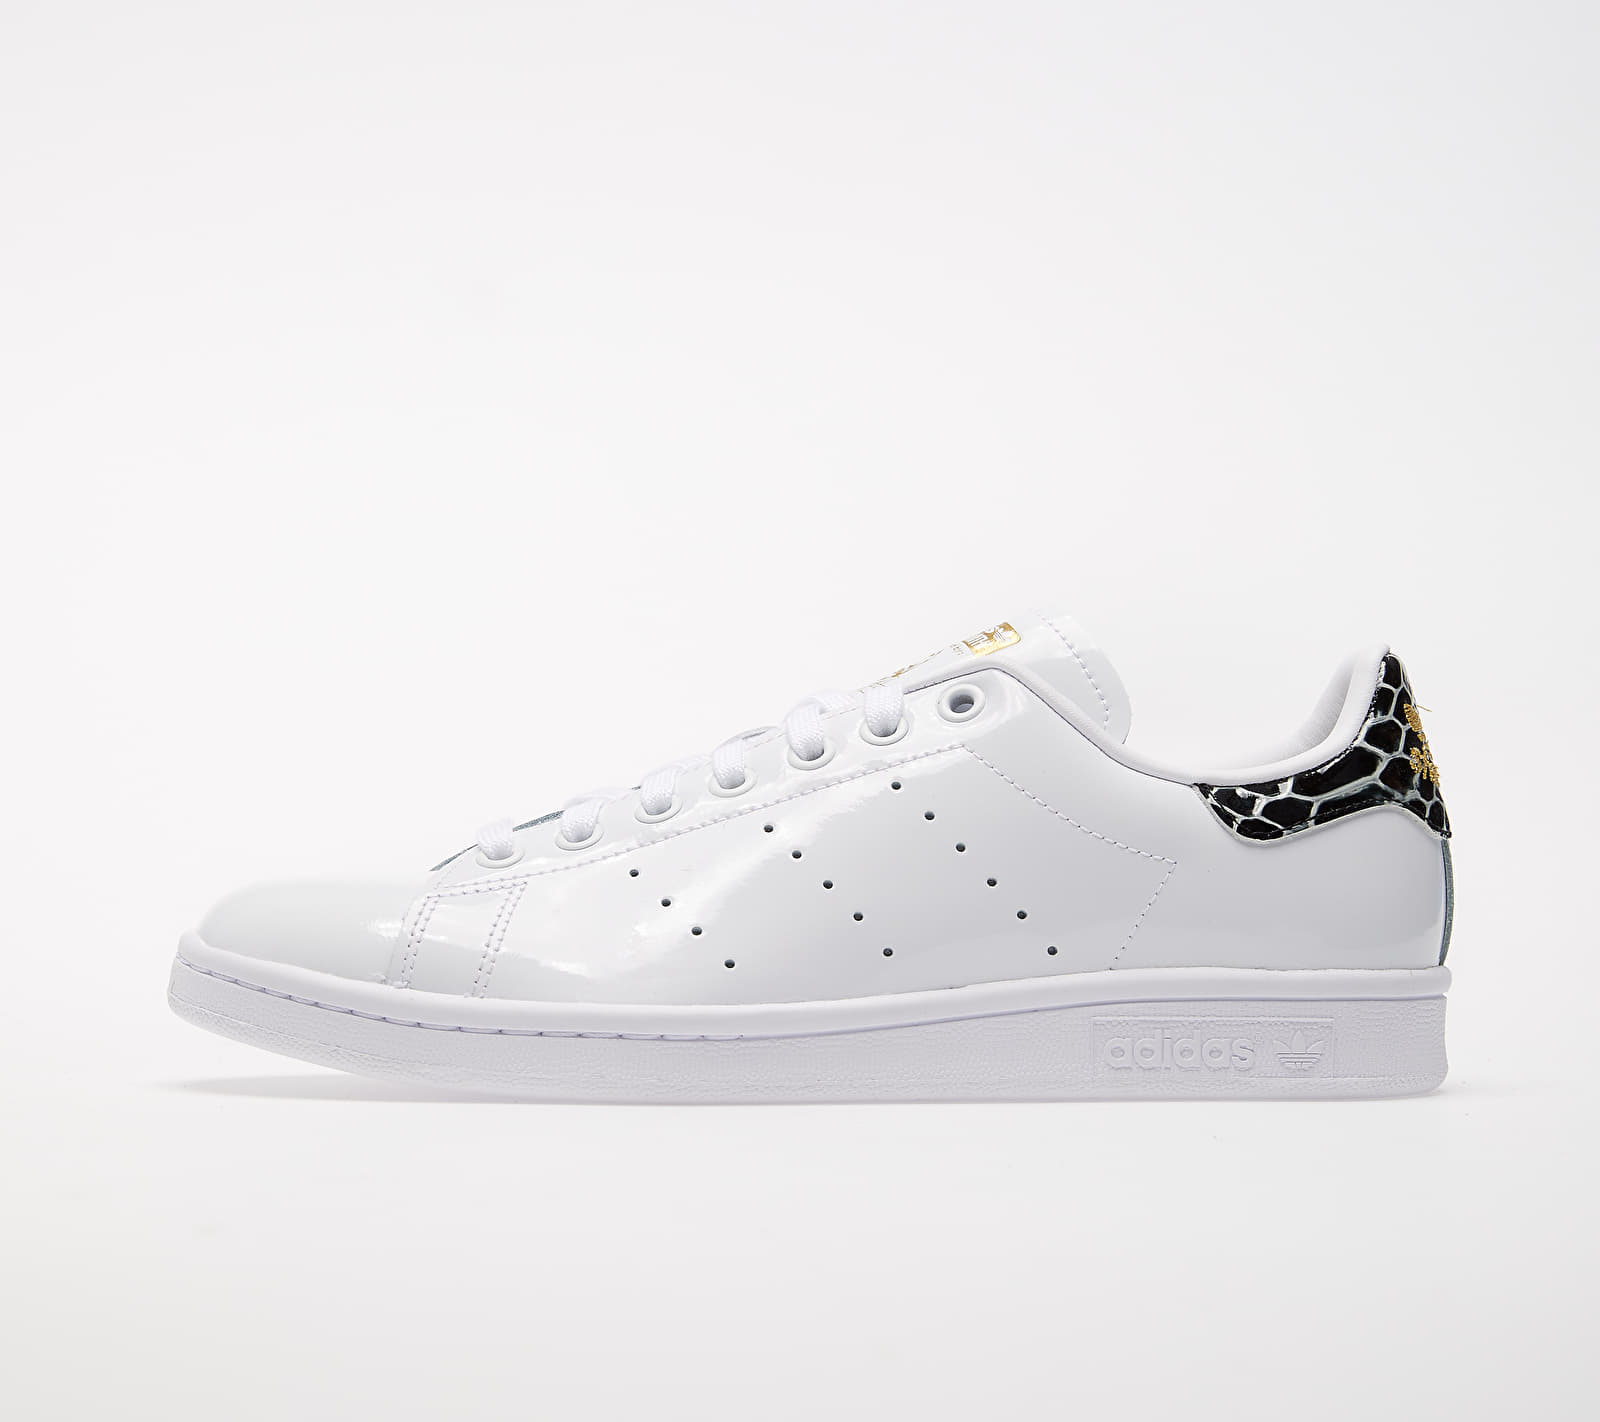 adidas Stan Smith W Ftw White/ Core Black/ Gold Metalic EUR 38